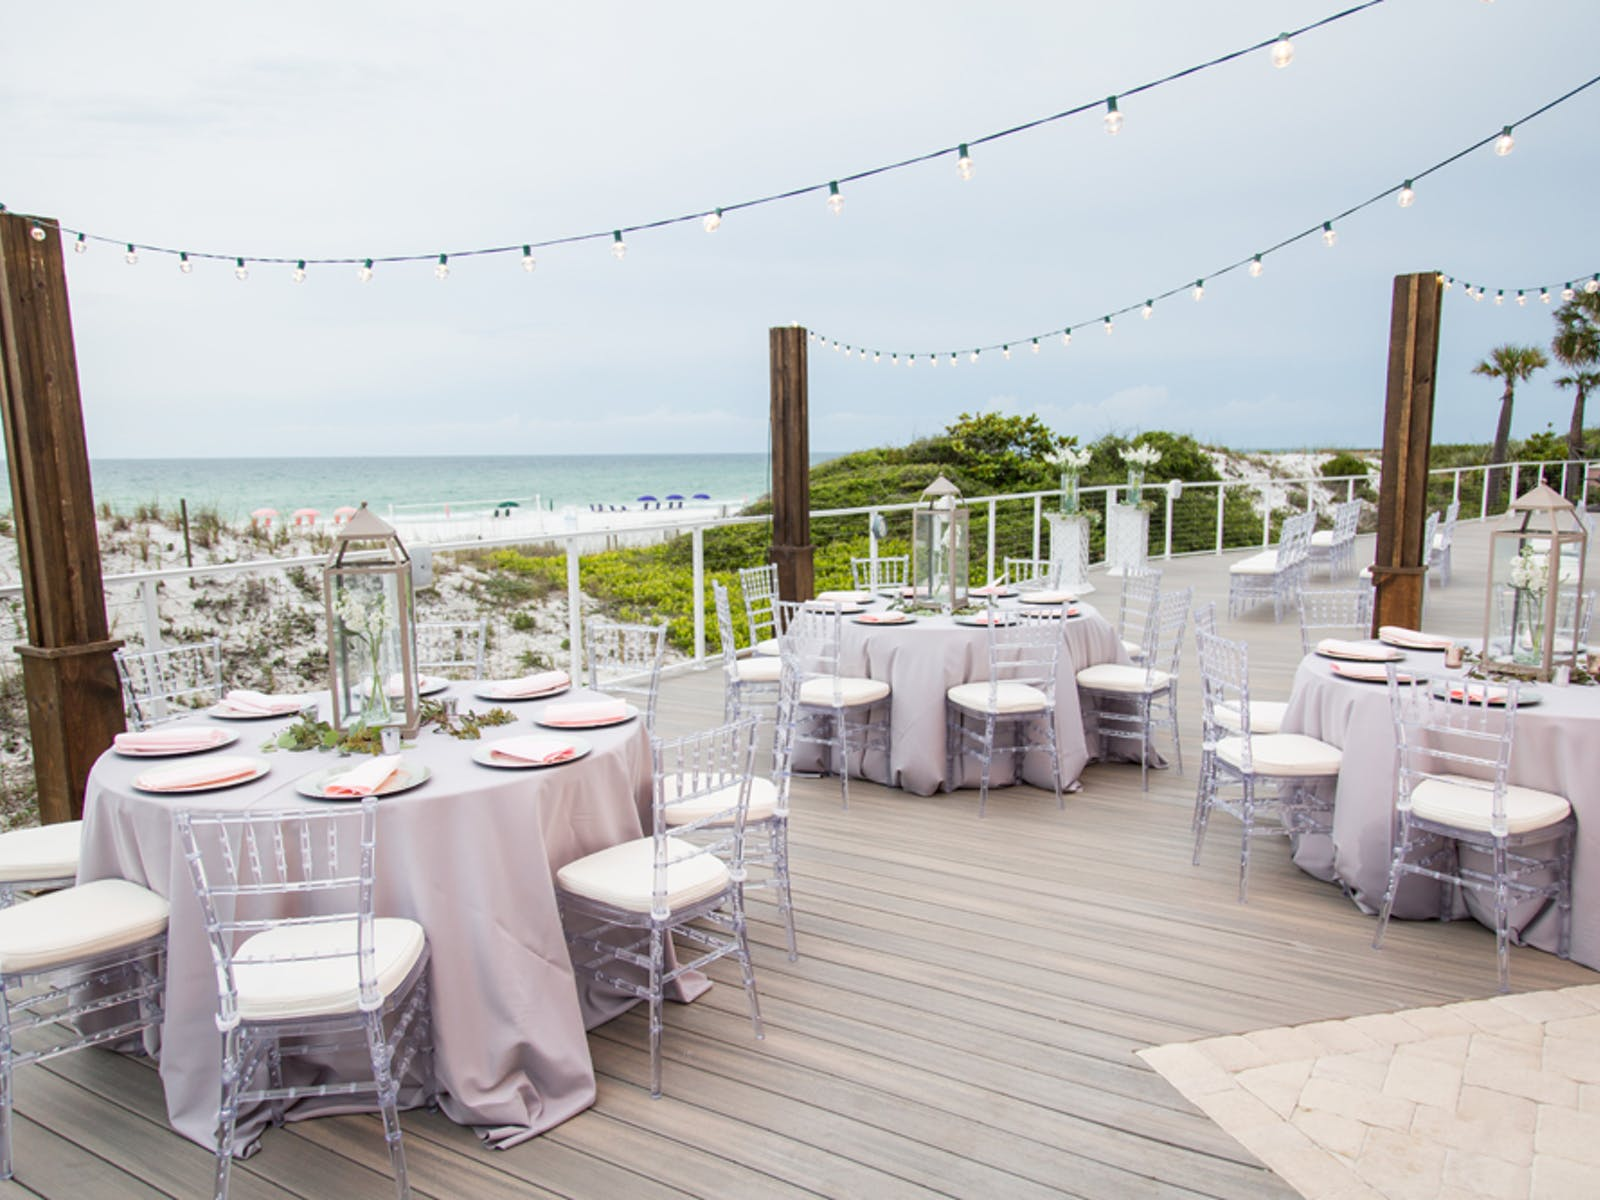 Weddings at TOPS'L Beach & Racquet Resort - Blue Dunes Deck Reception